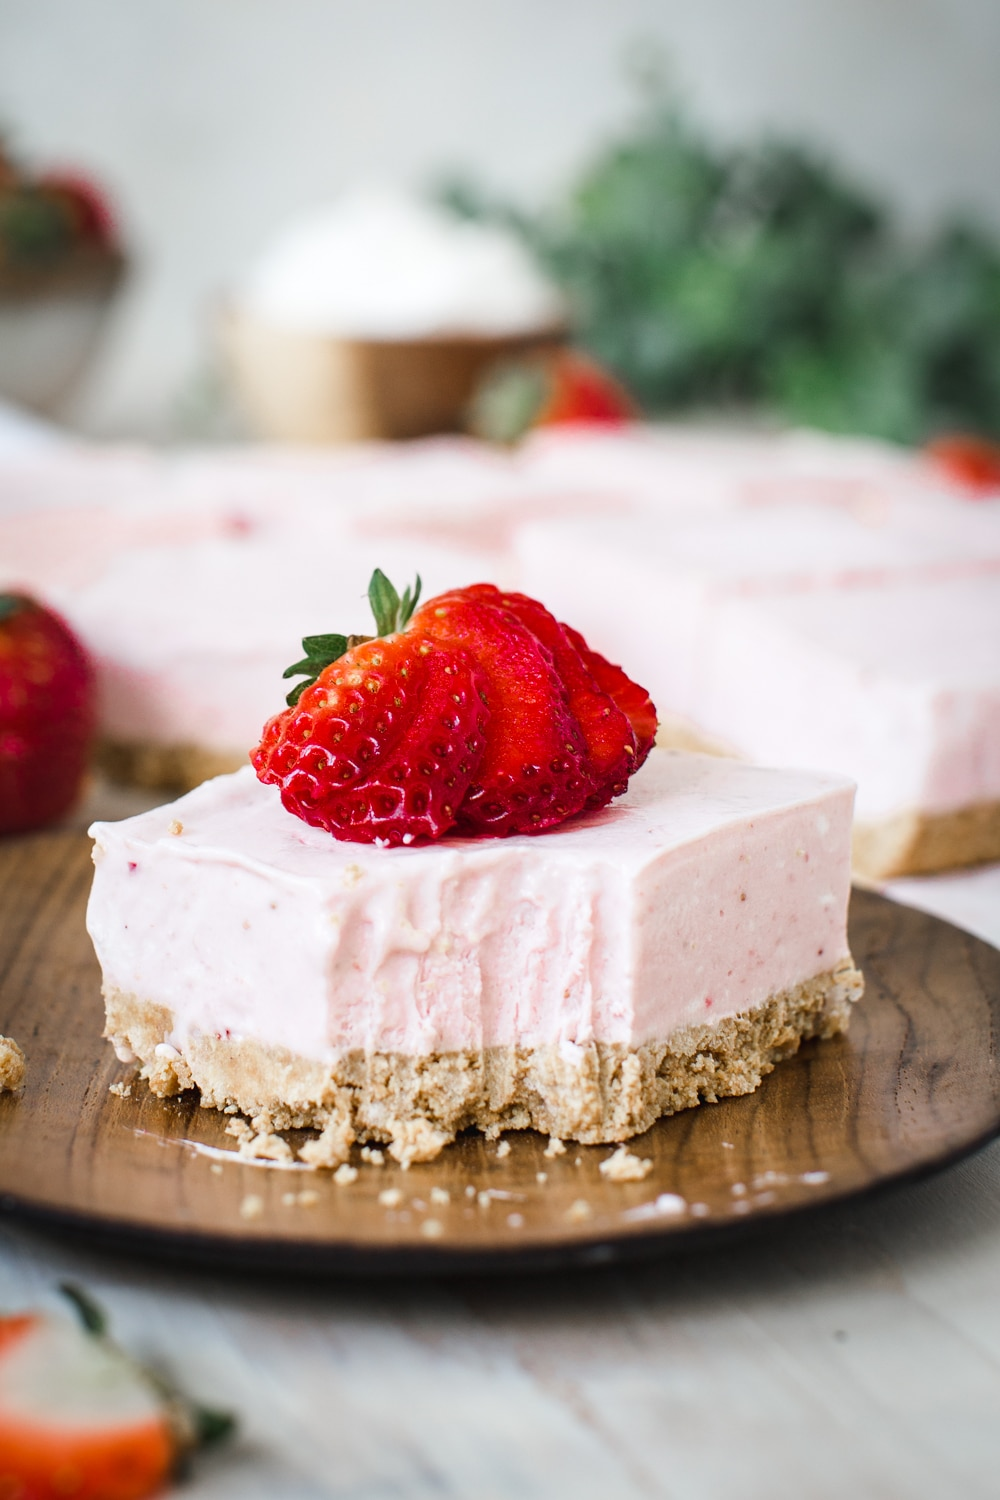 Strawberry Cheesecake Bar with slice cut out